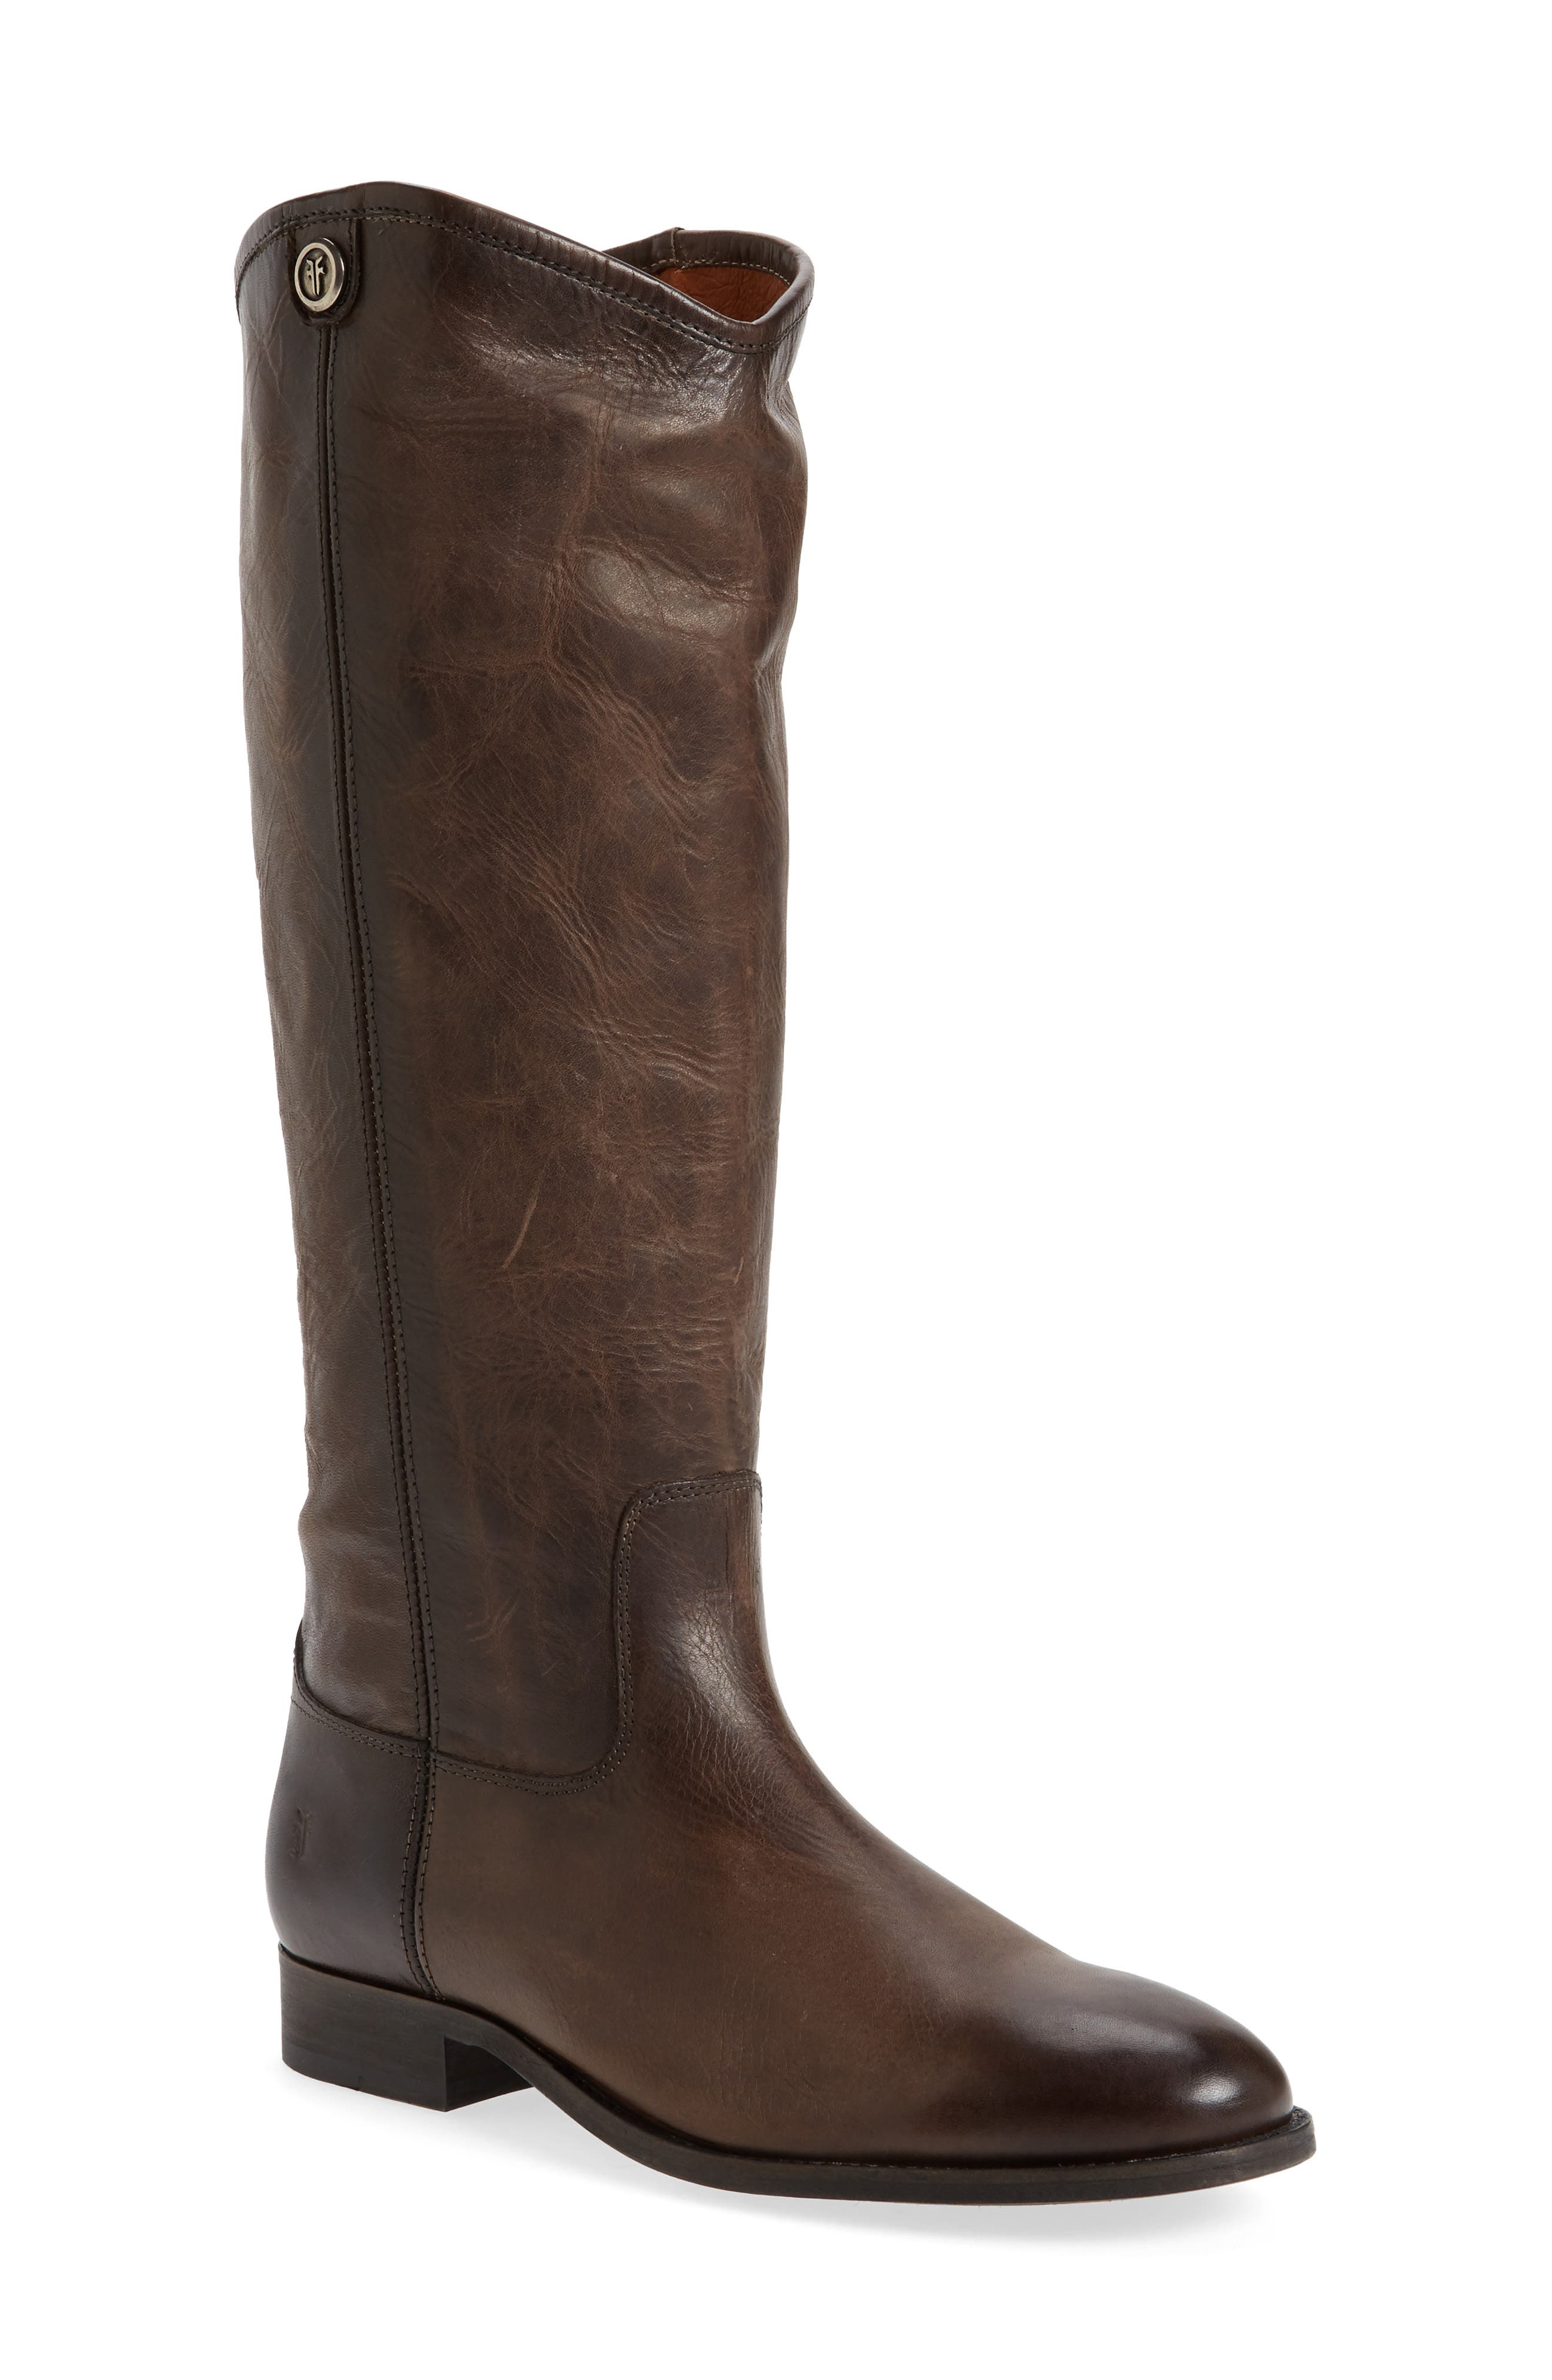 Main Image - Frye Melissa Button 2 Knee High Boot (Women)